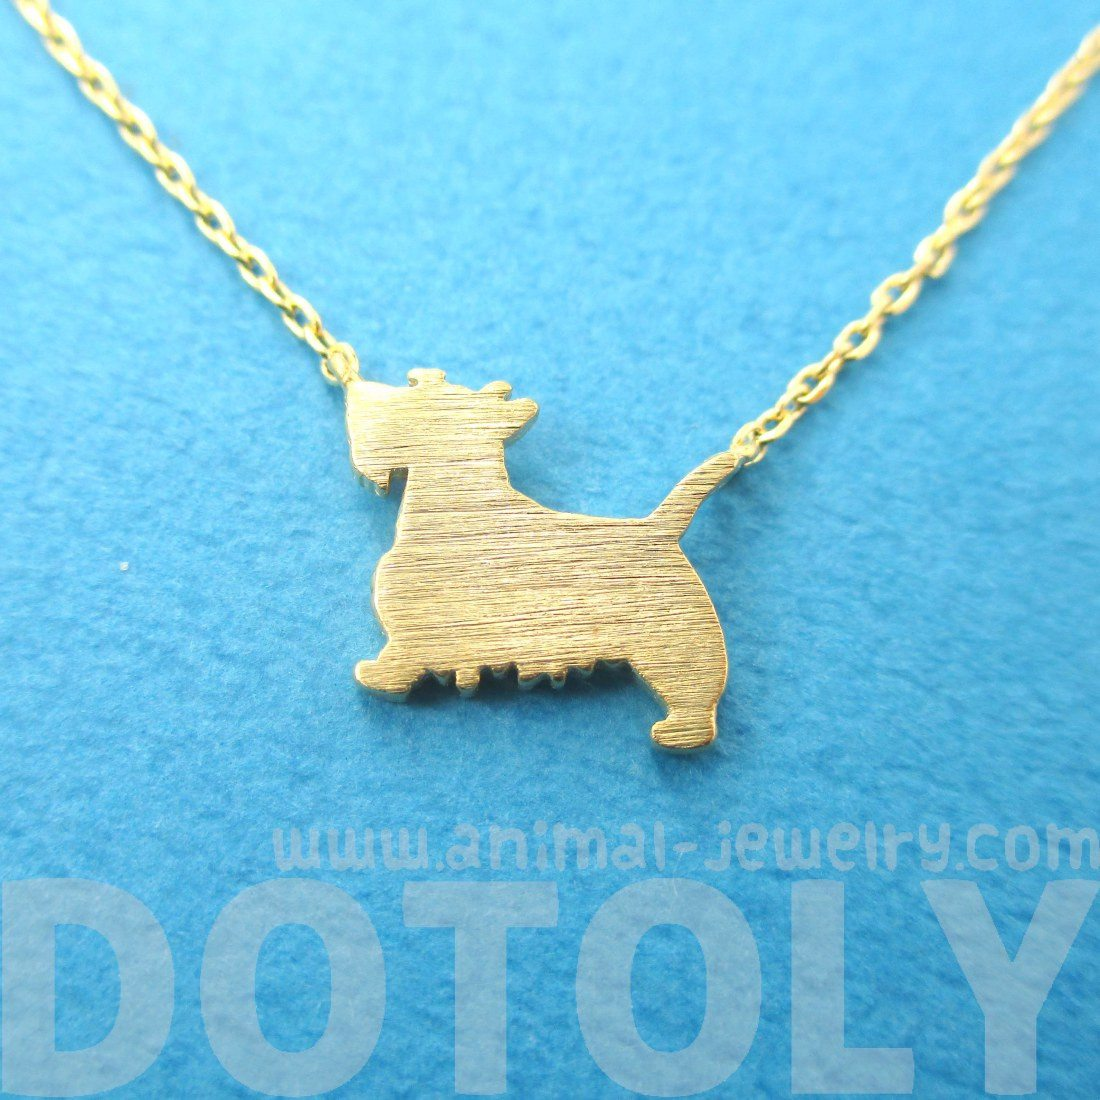 Scottish Terrier Dog Shaped Silhouette Necklace in Gold